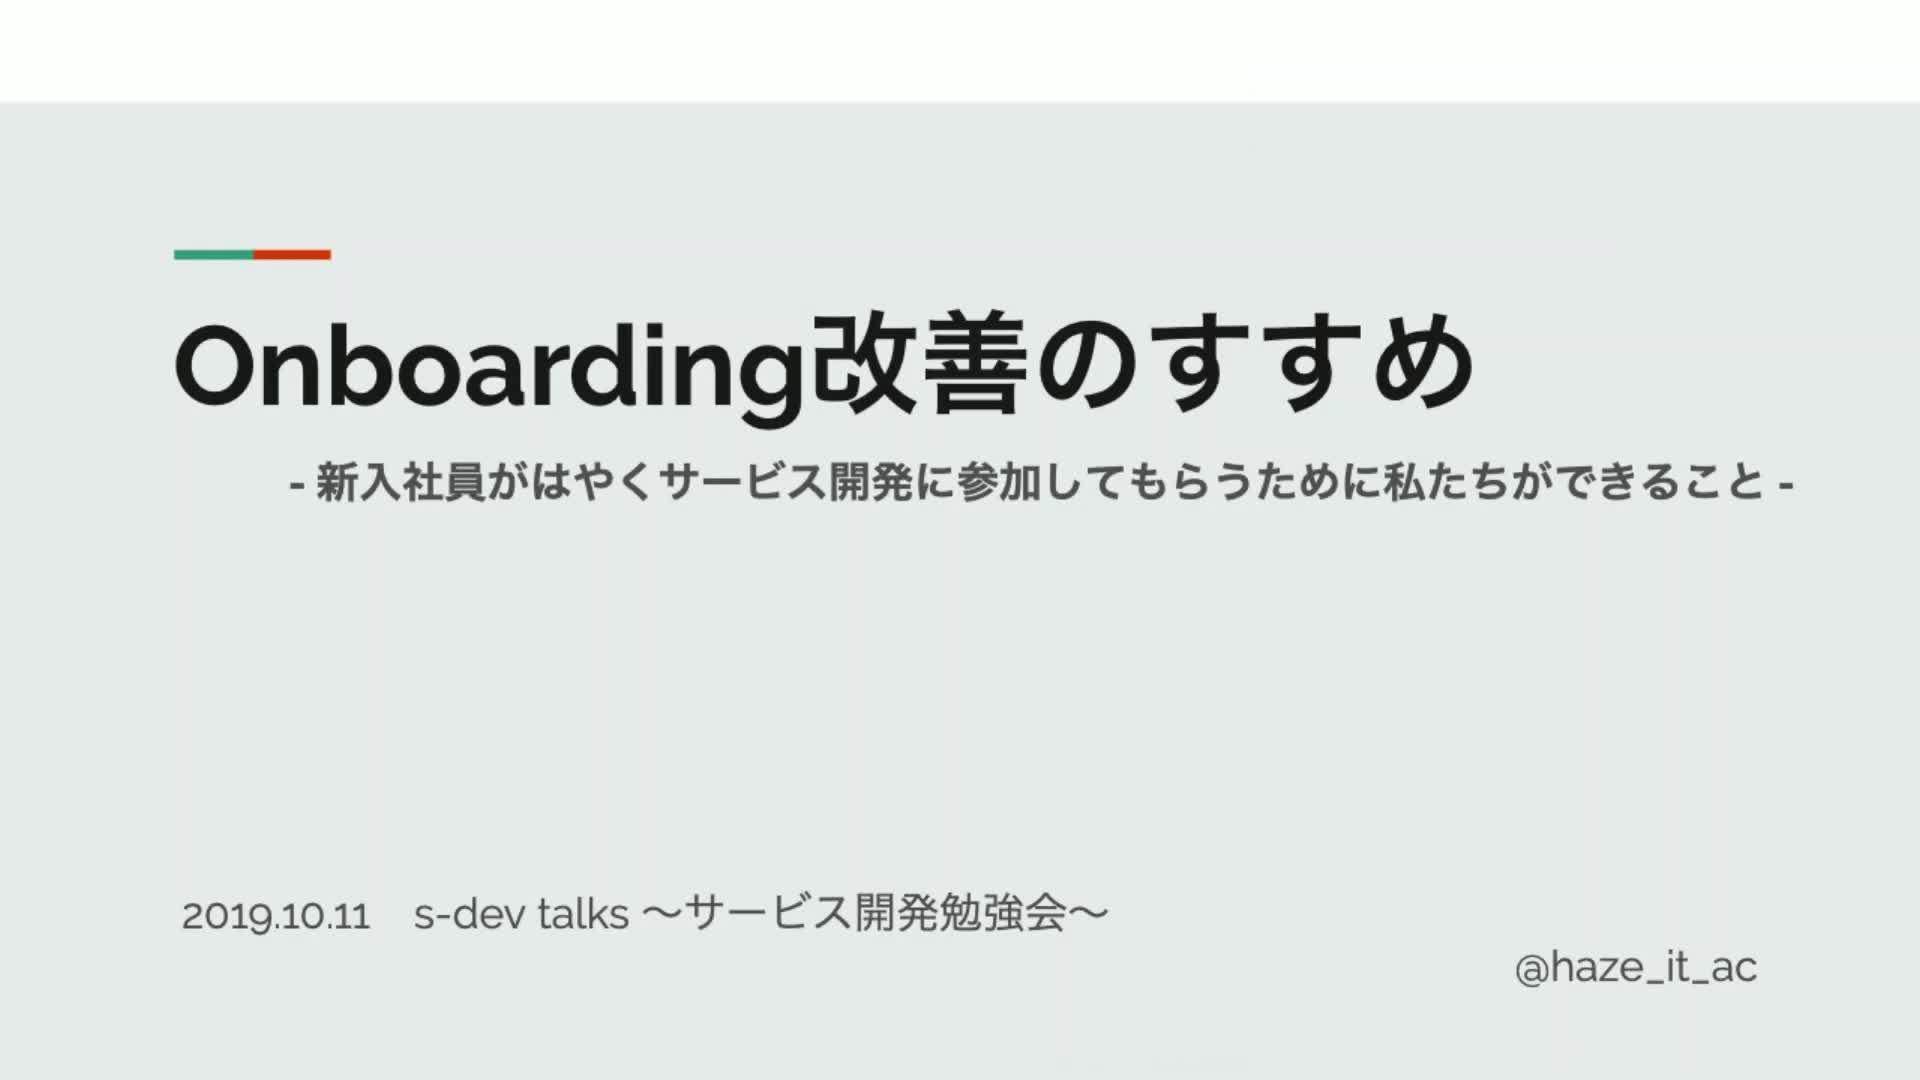 Onboarding改善のすすめ